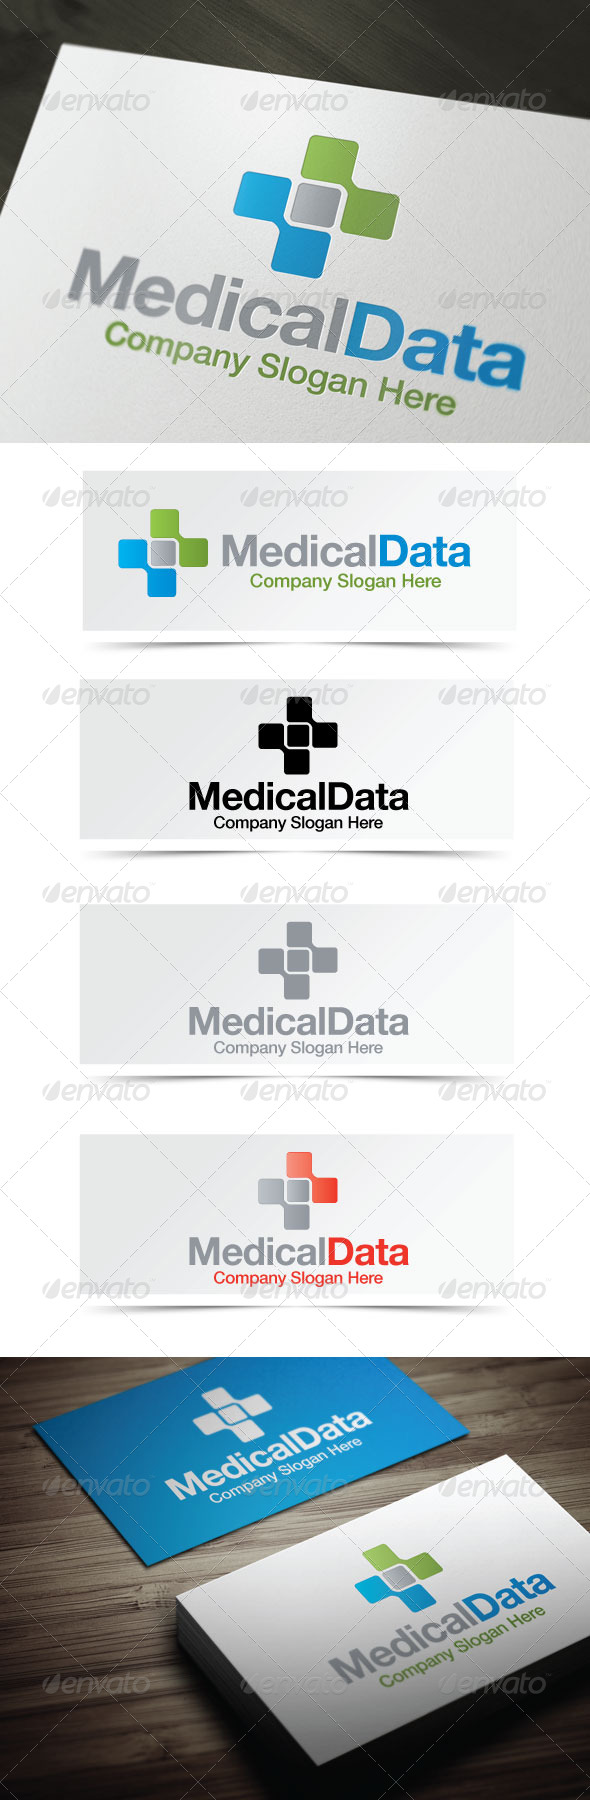 GraphicRiver Medical Data 4079752